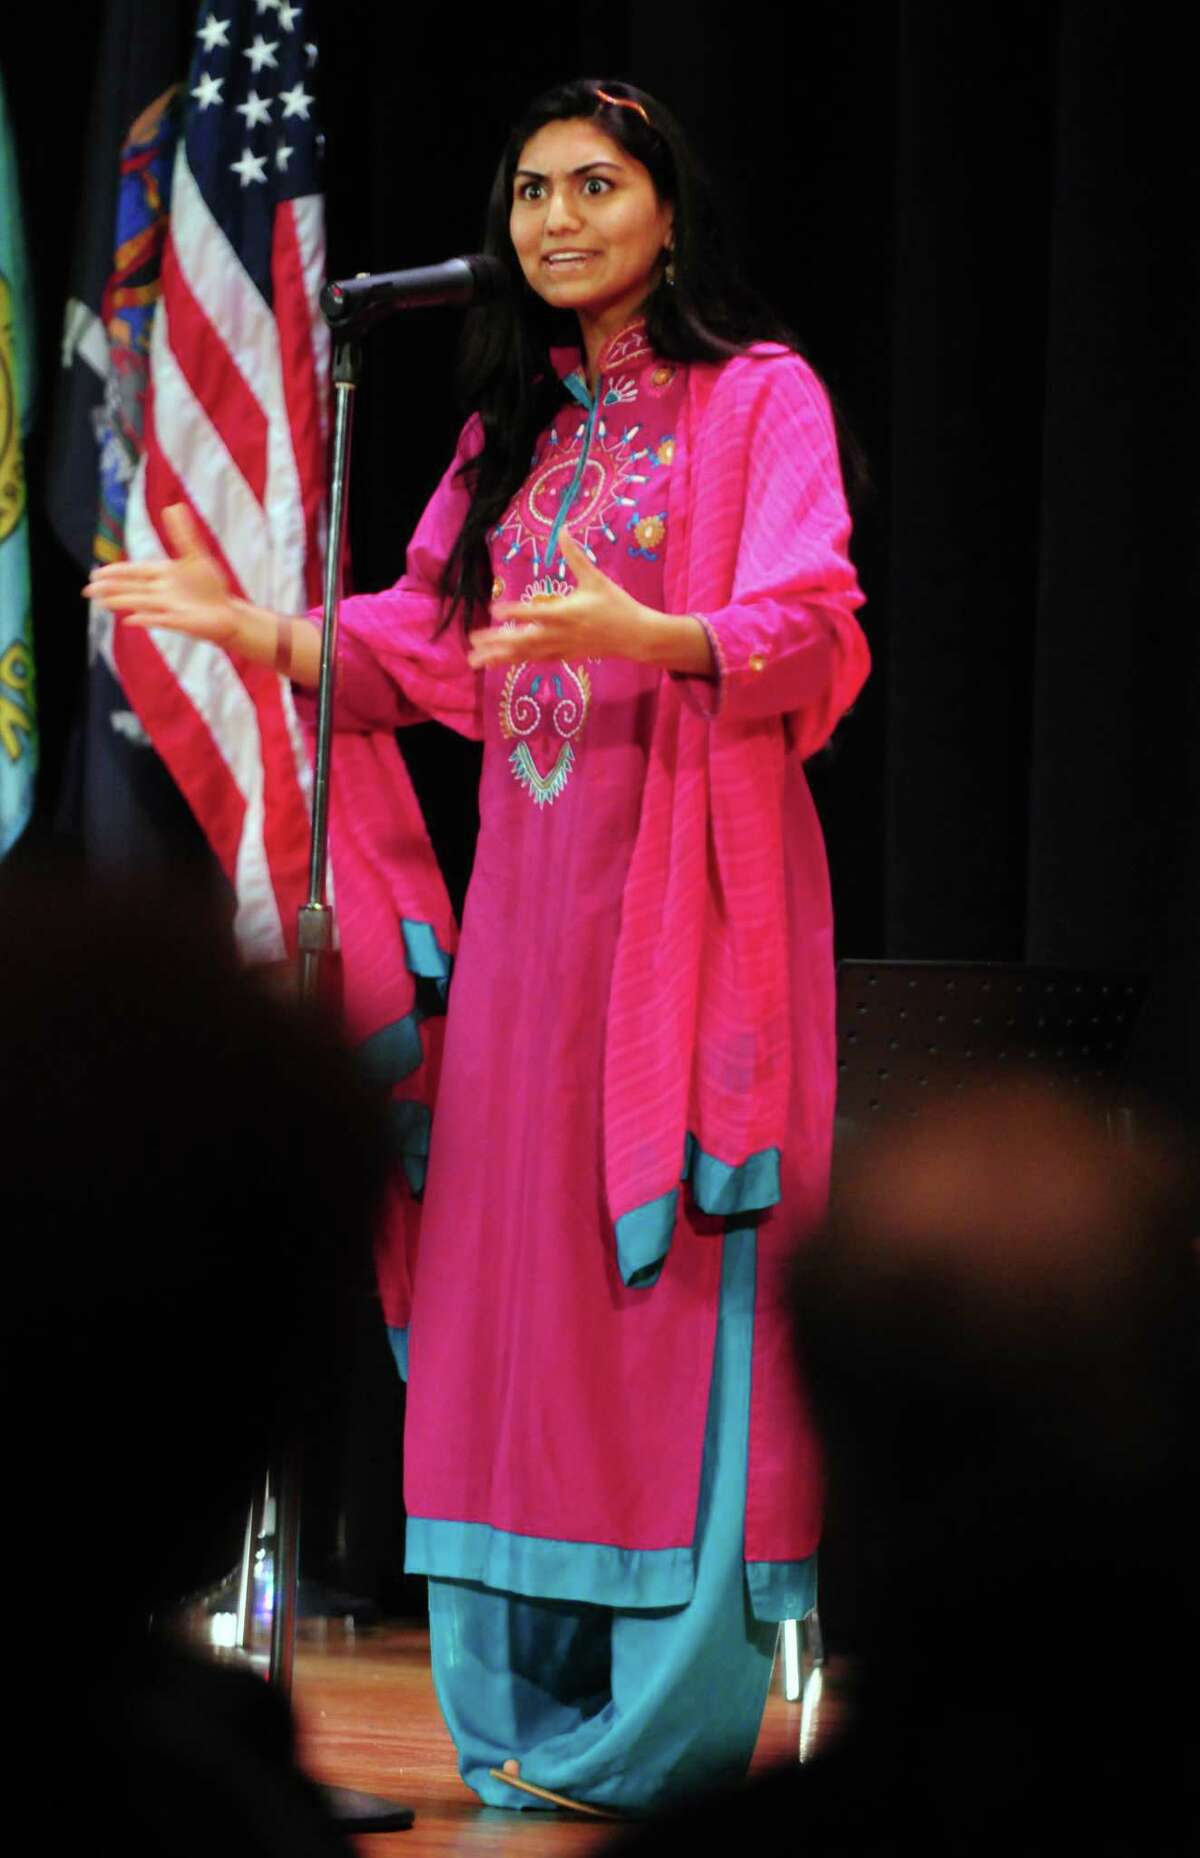 Sarah Syed, 18, of Niskayuna High School shares a story Sunday, April 21, 2013, during a multi-faith storytelling presentation from Children at the Well at Hudson Valley Community College in Troy, N.Y. Children at the Well promotes peace by bringing diverse teens together through the art of storytelling. (Will Waldron/Times Union)